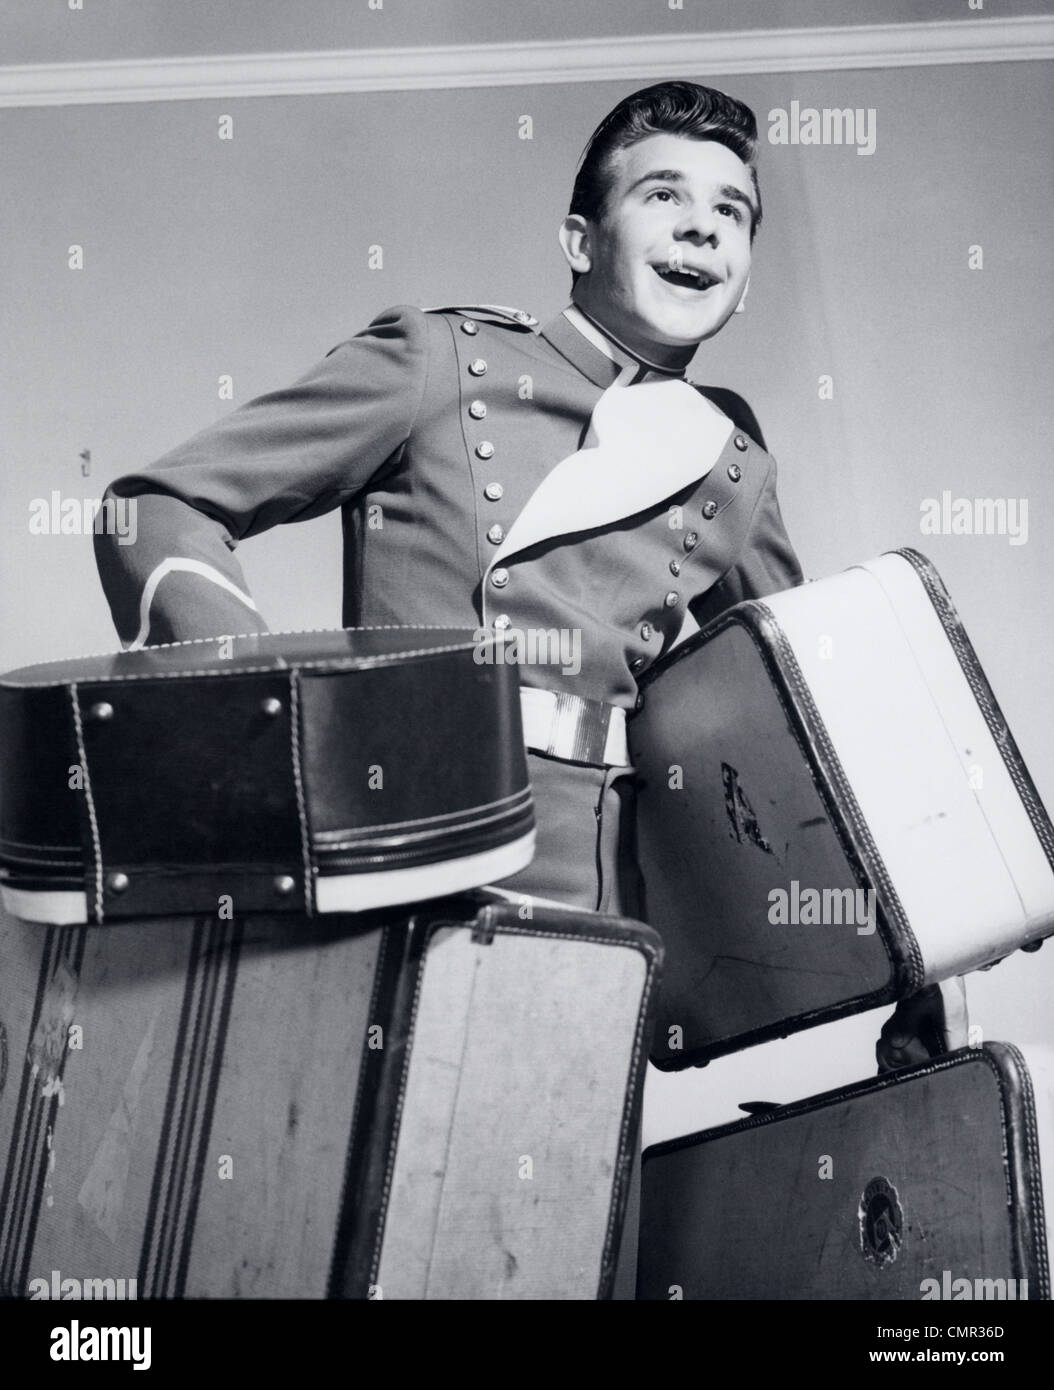 1950s SMILING BELLBOY CARRYING FOUR BAGS OF LUGGAGE - Stock Image